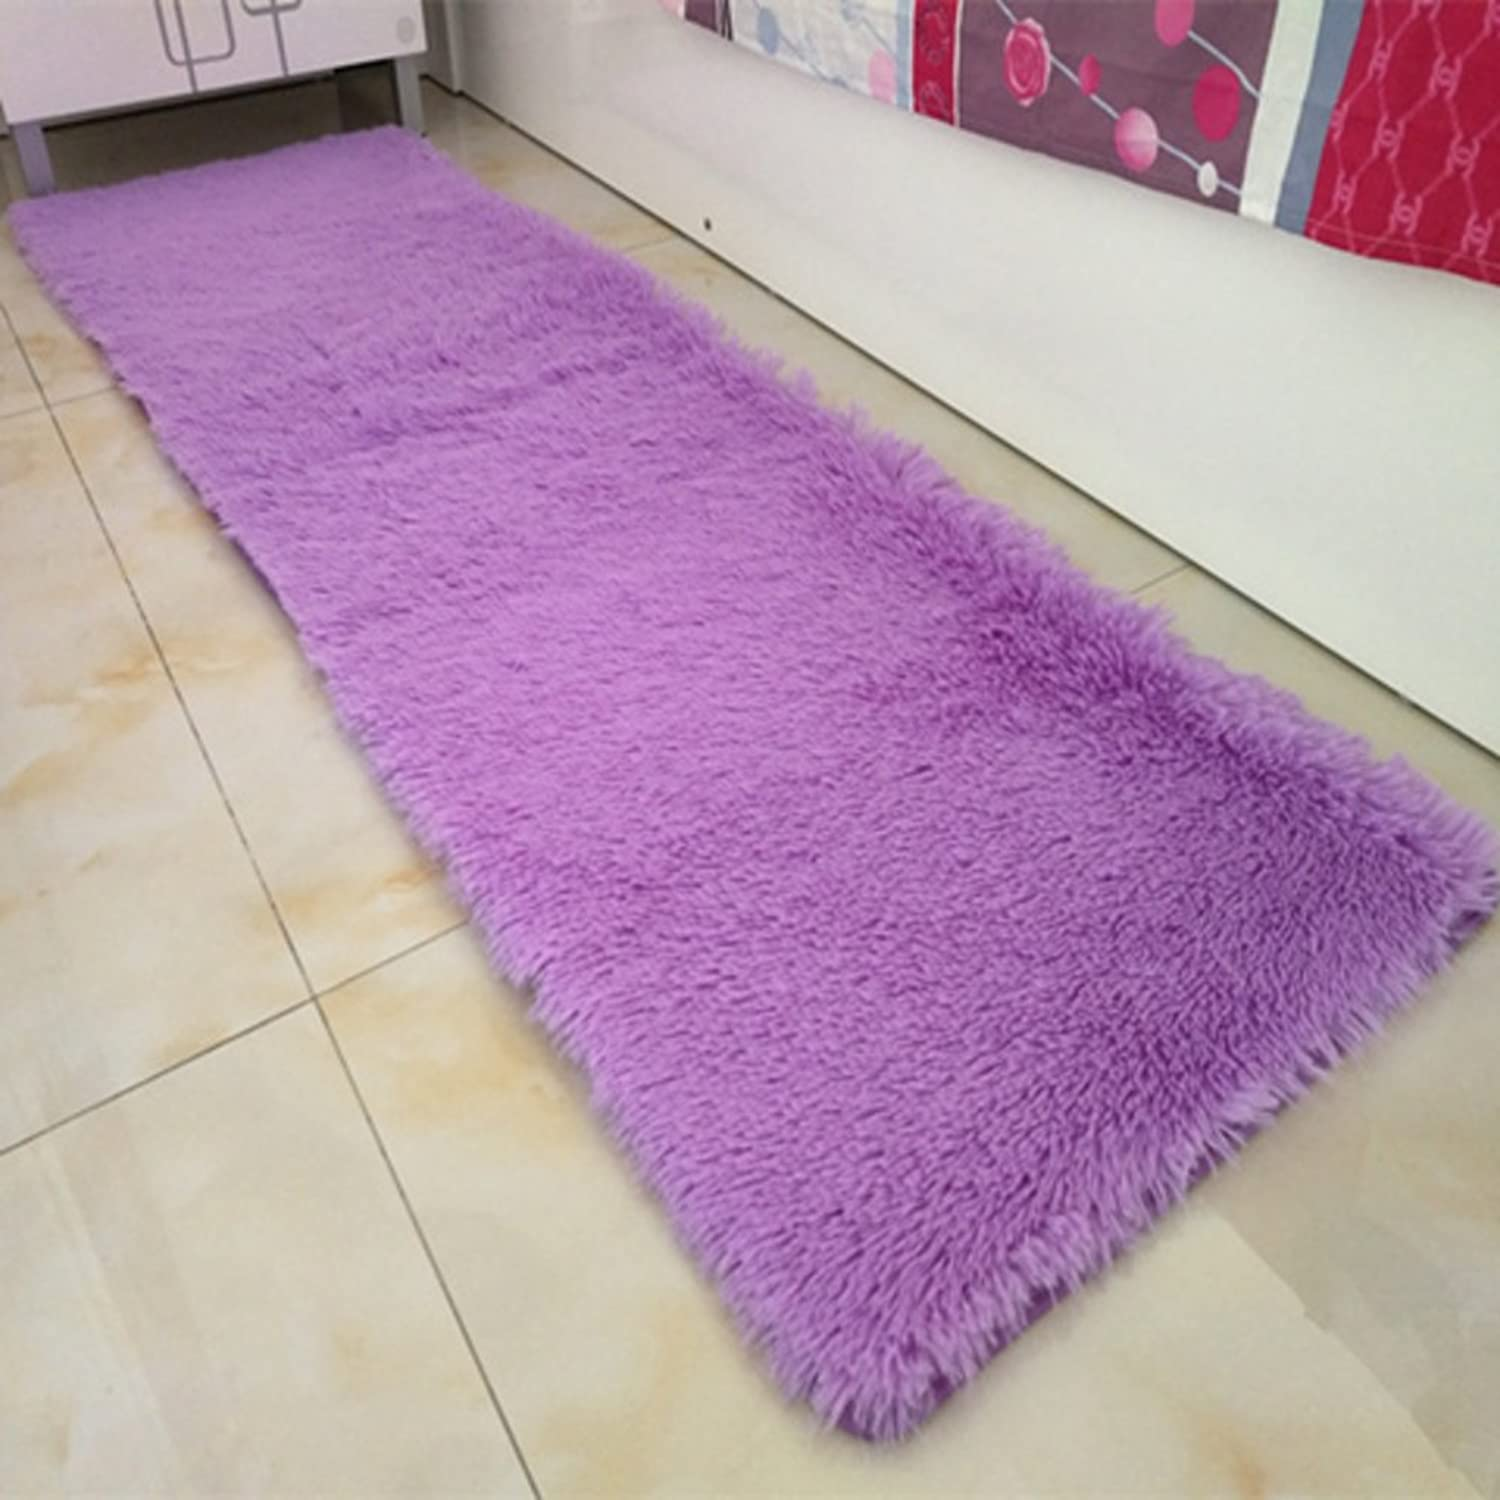 Door mat,Gate pad,Rug,Could be washed by water,Thicken,Long cashmere,Hair mats,Bedroom,[bedside],Bay window mats,Balconies mats-J 60x160cm(24x63inch)